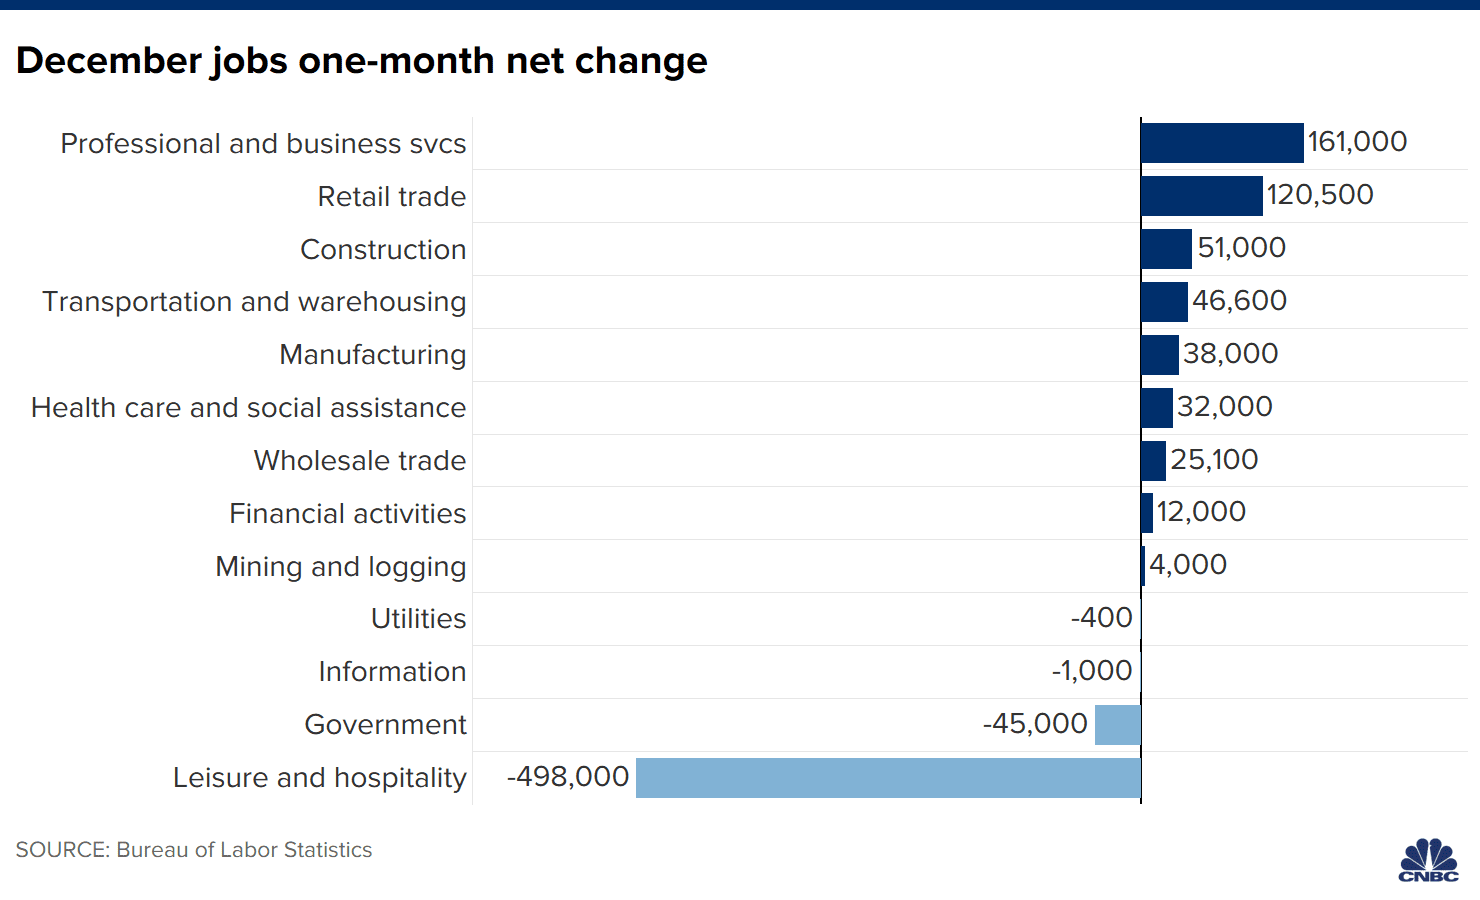 heres-where-the-jobs-are-for-december-2020-in-one-chart